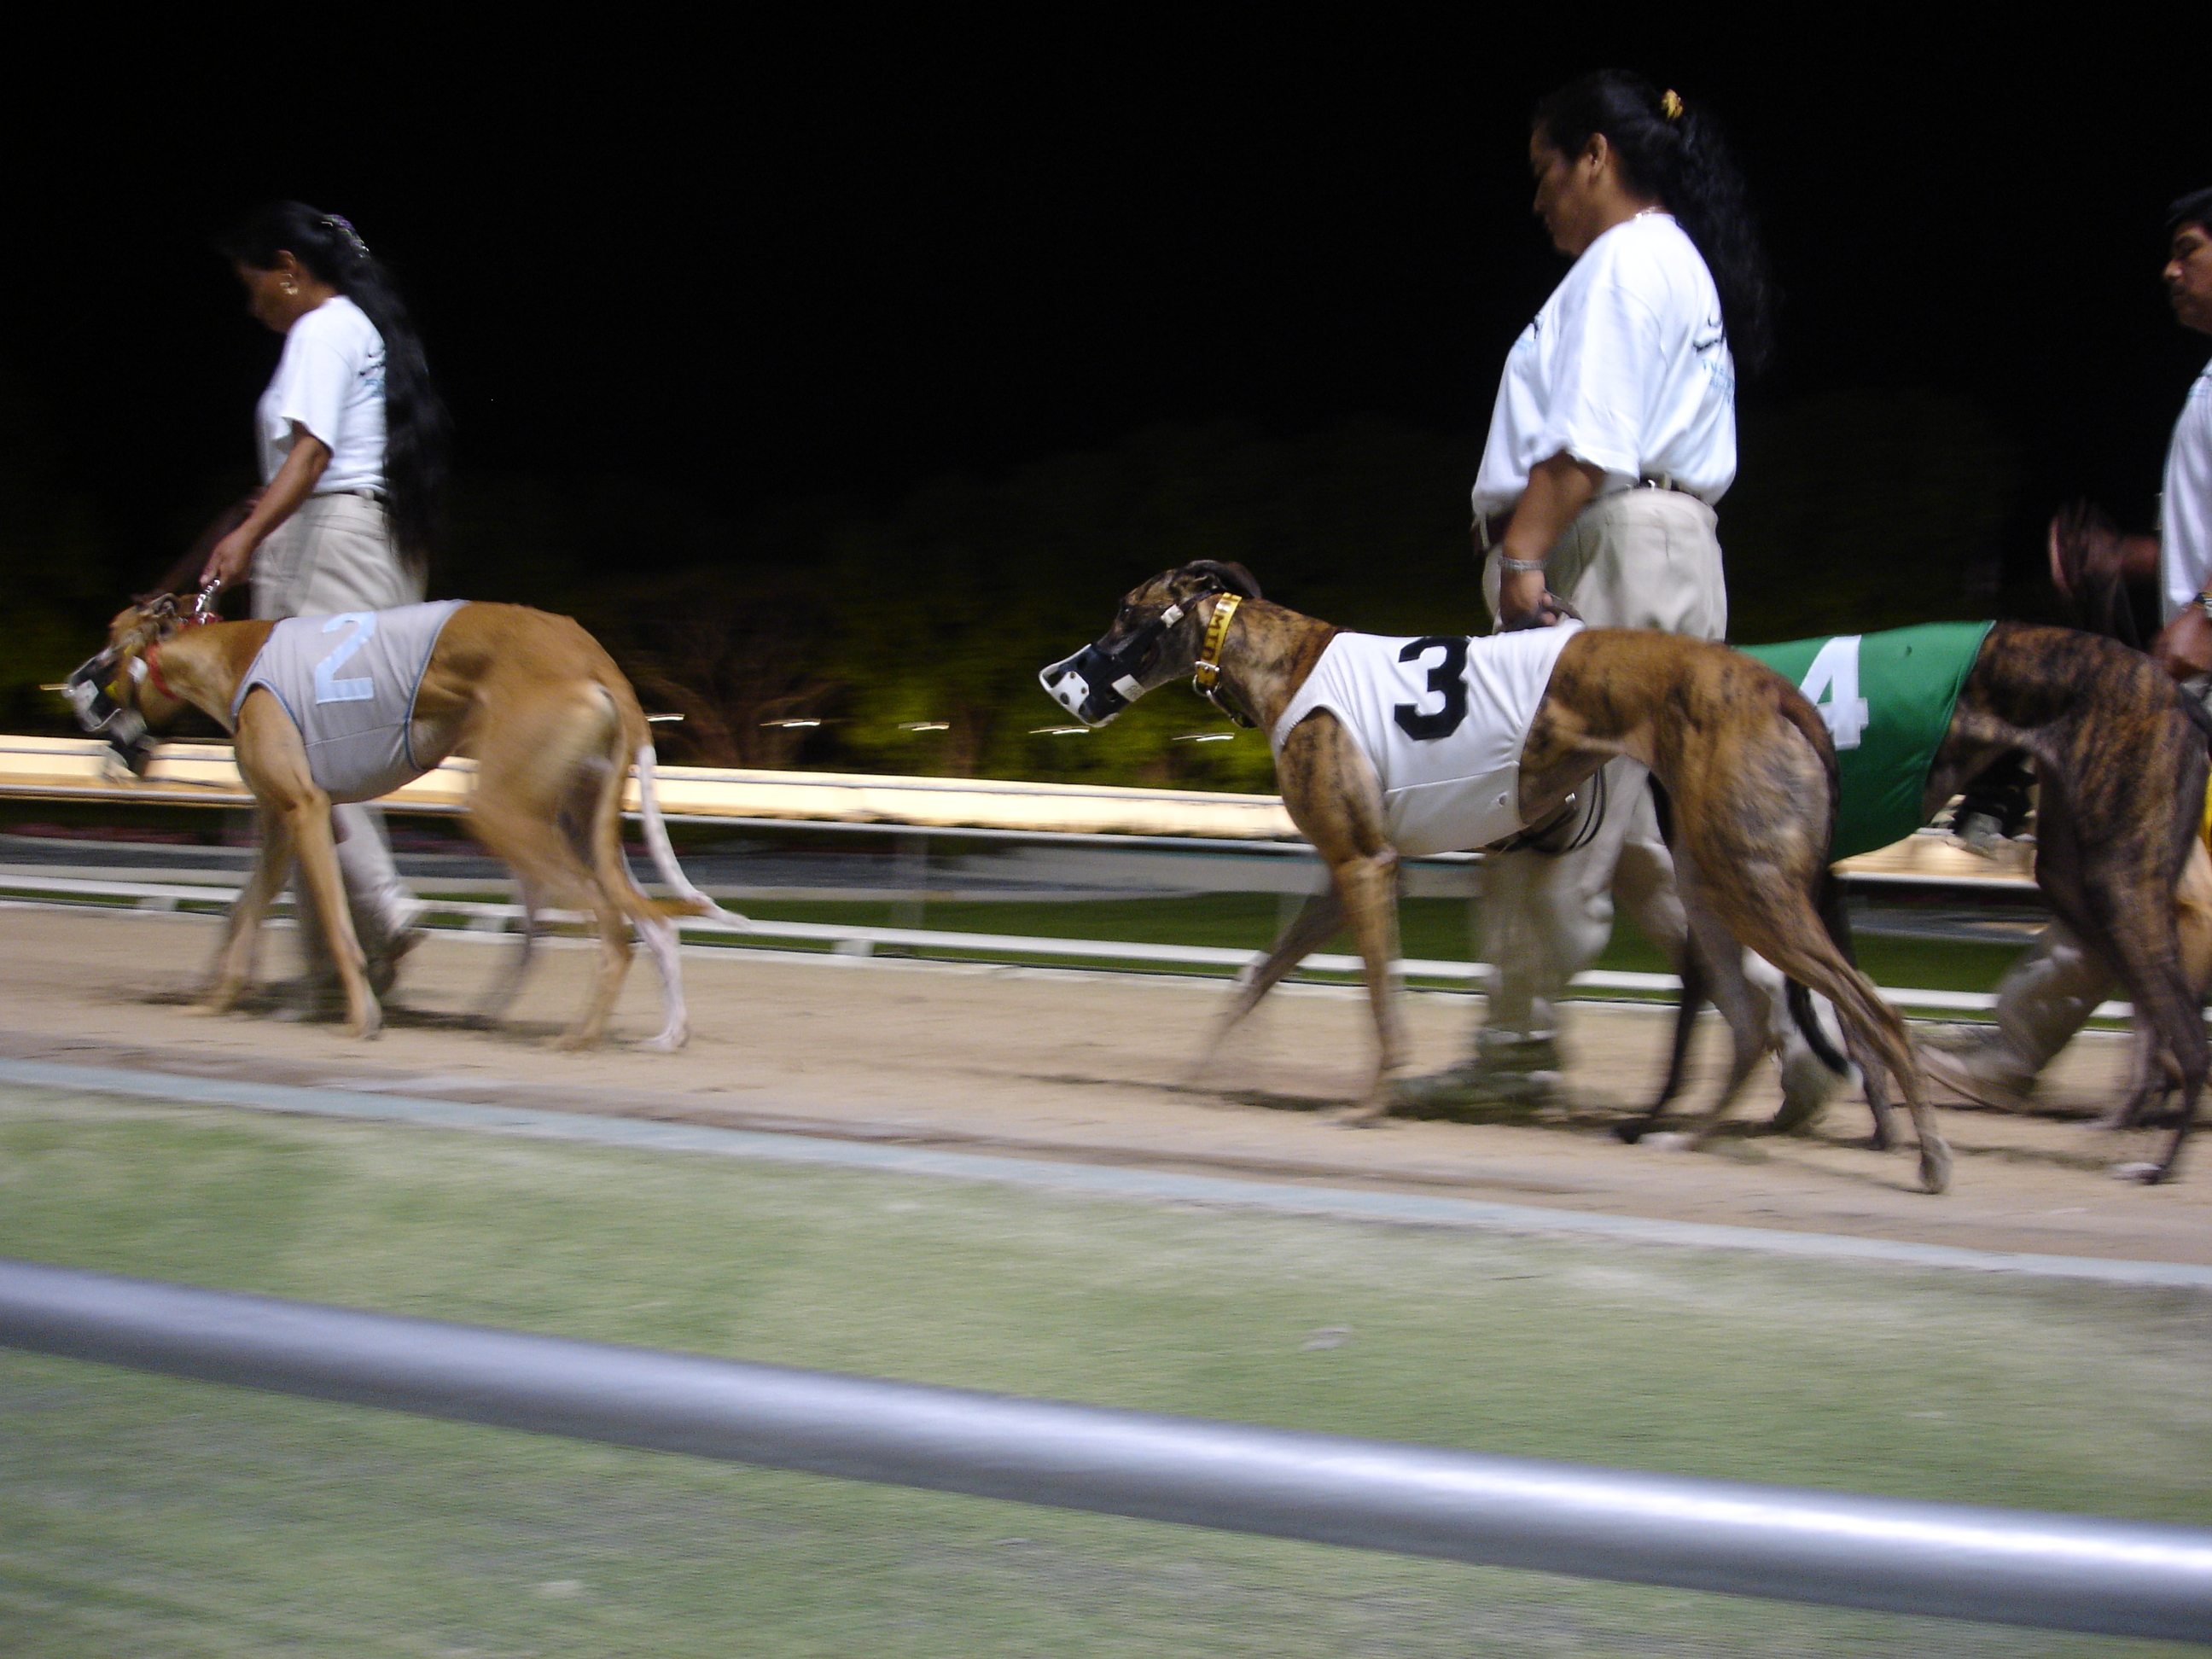 greyhound speech Greyhound racing ban: nsw is looking at the industry from the dogs' point of in the 55 years since jfk's speech, 40 us states have banned greyhound racing.